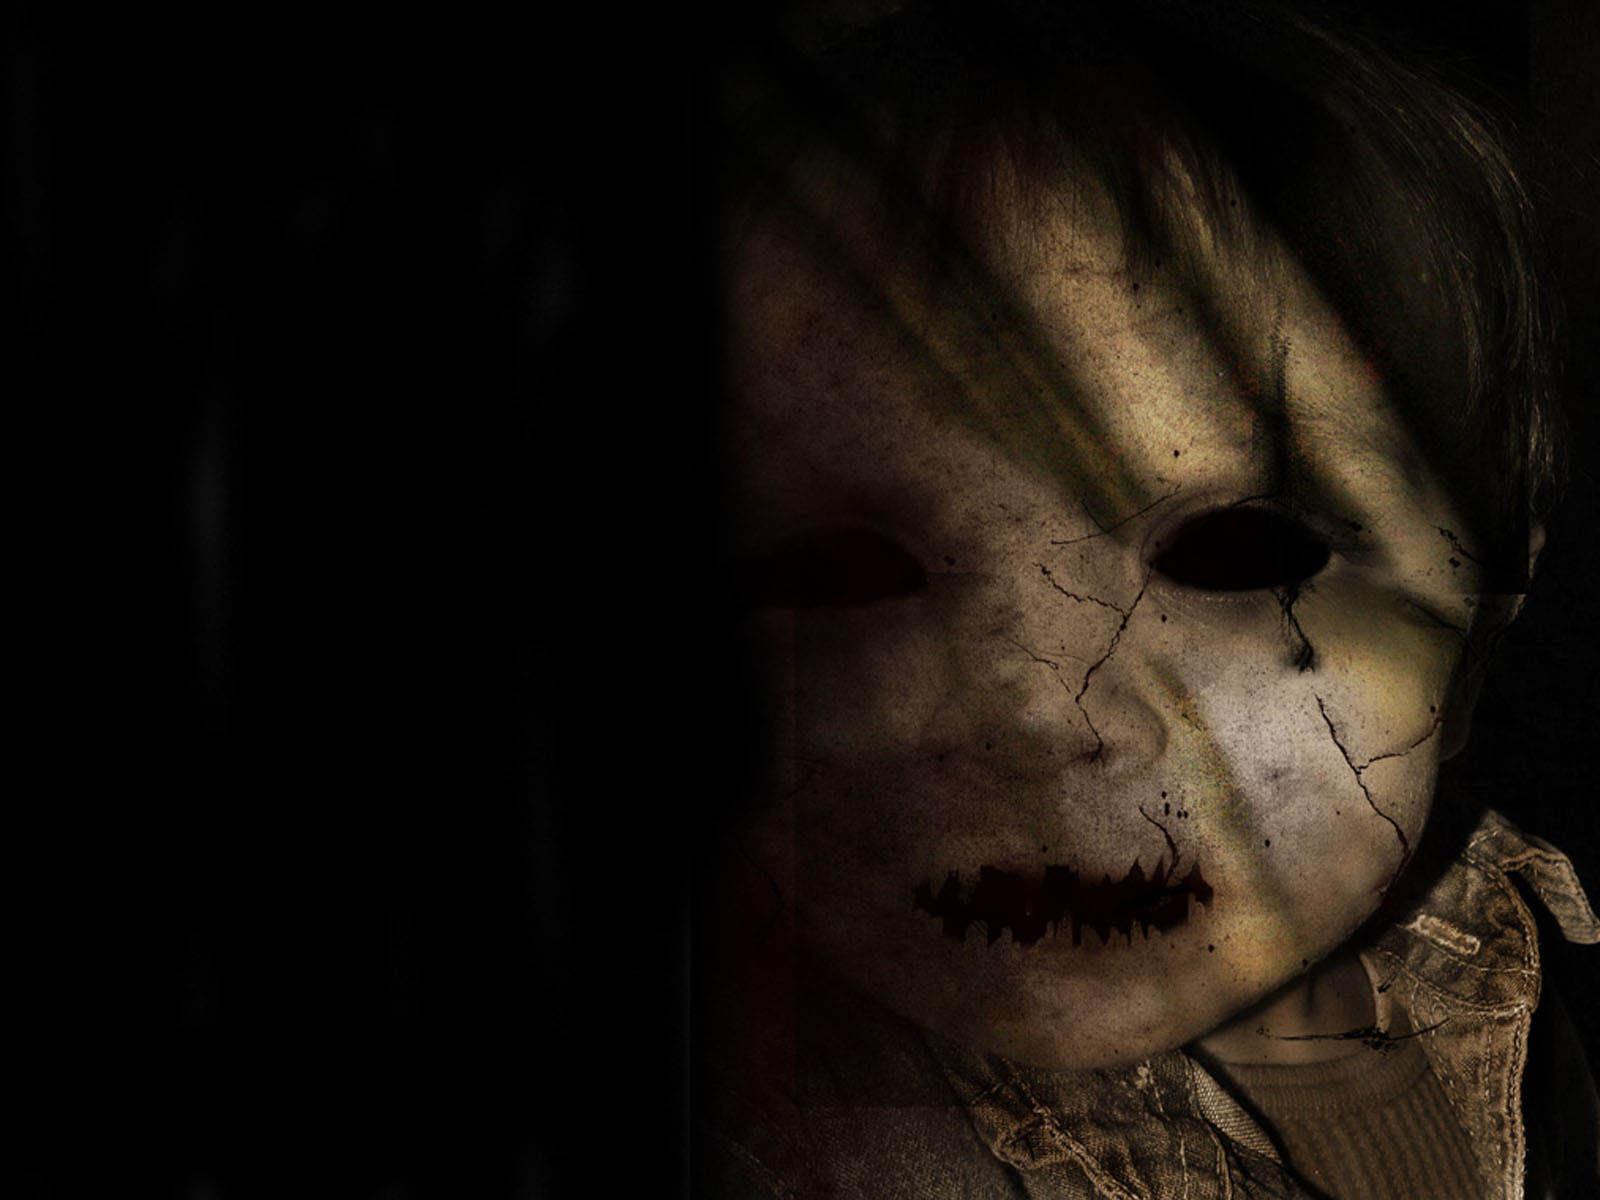 Tag: Scary Horror Wallpapers, Images, Photos, Pictures and Backgrounds ...